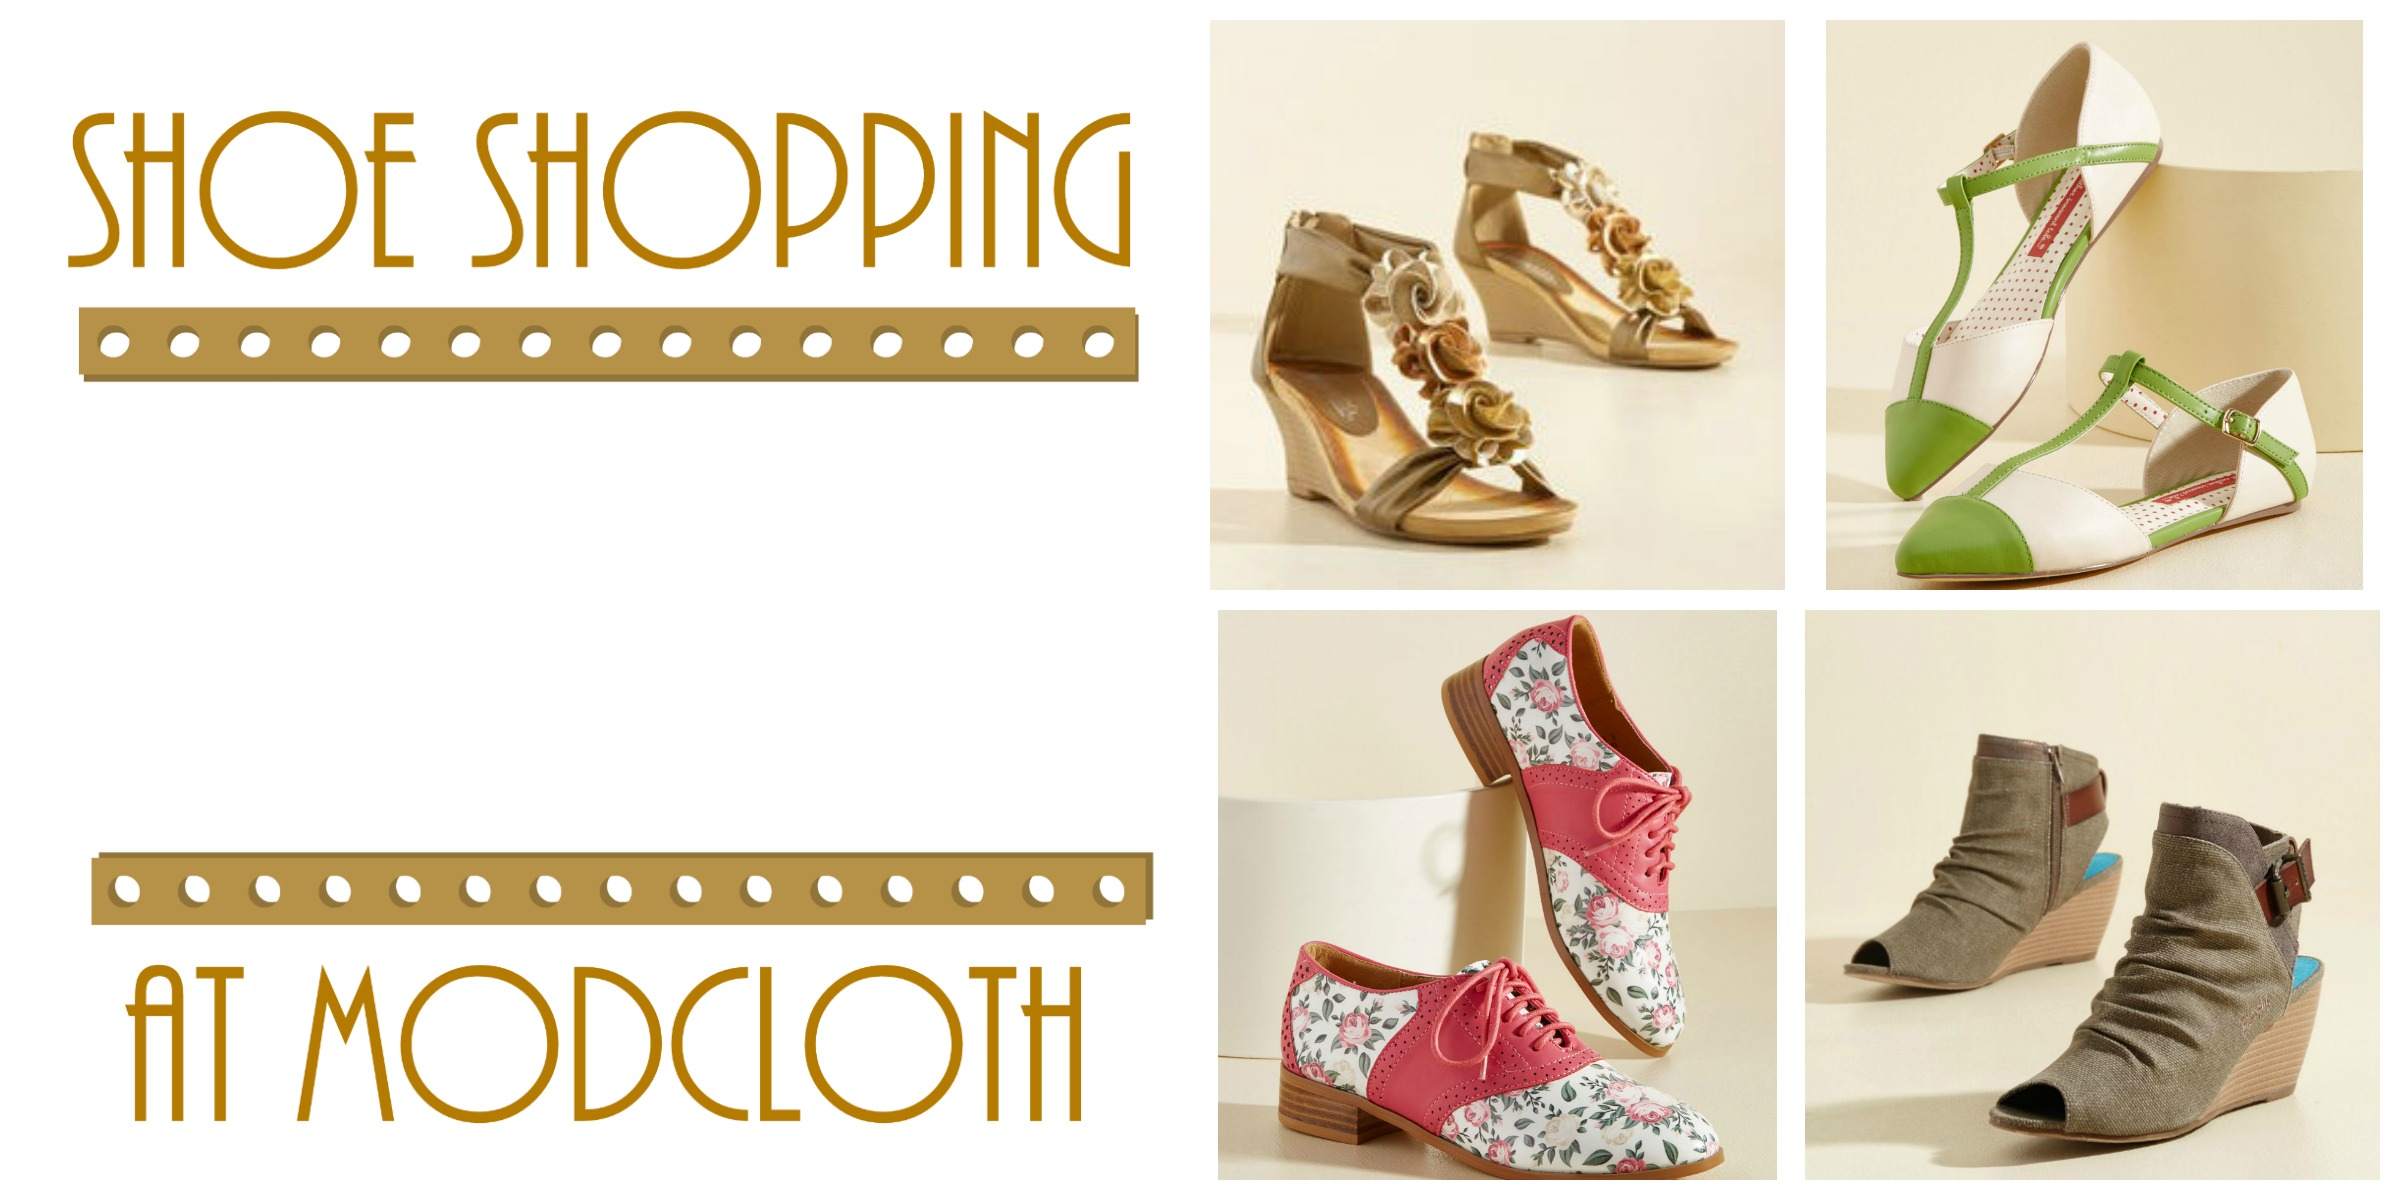 Shoe Shopping at Modcloth